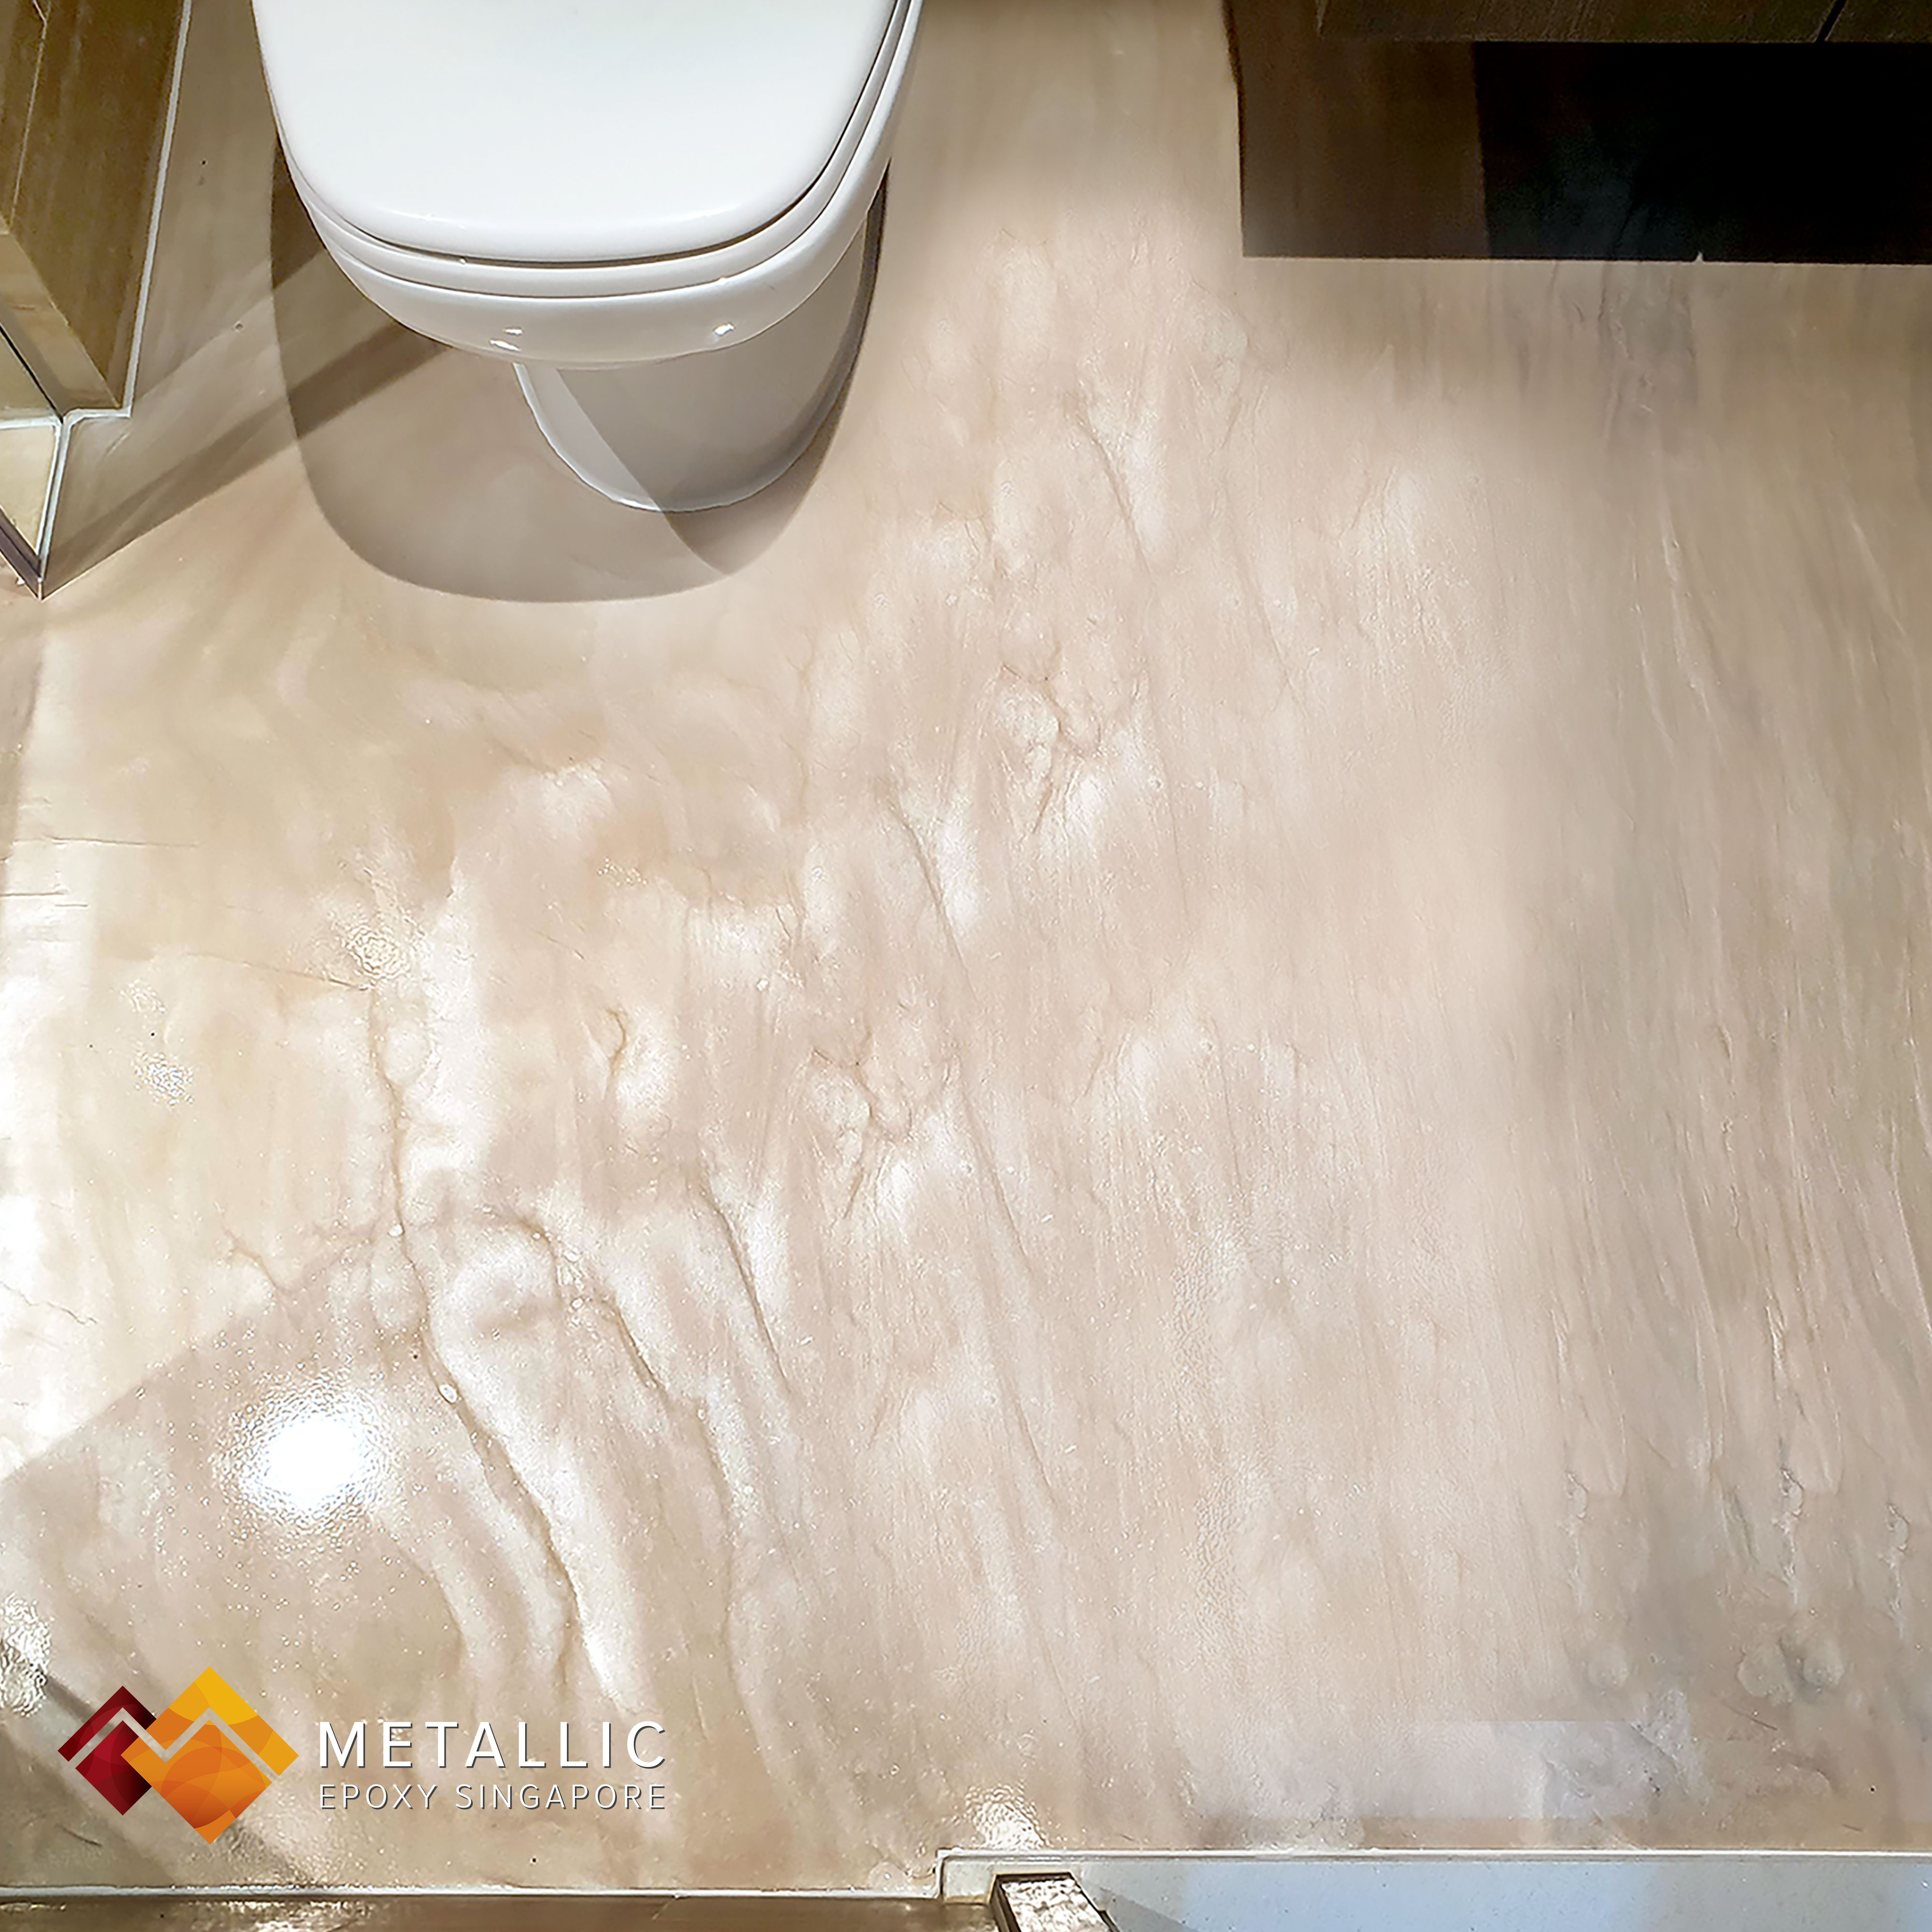 A Lovely Metallic Epoxy Wood Theme Coating Created With From A Light Brown And Coffee Mix For This Bathroom Inspiration Modern Epoxy Floor Metallic Epoxy Floor